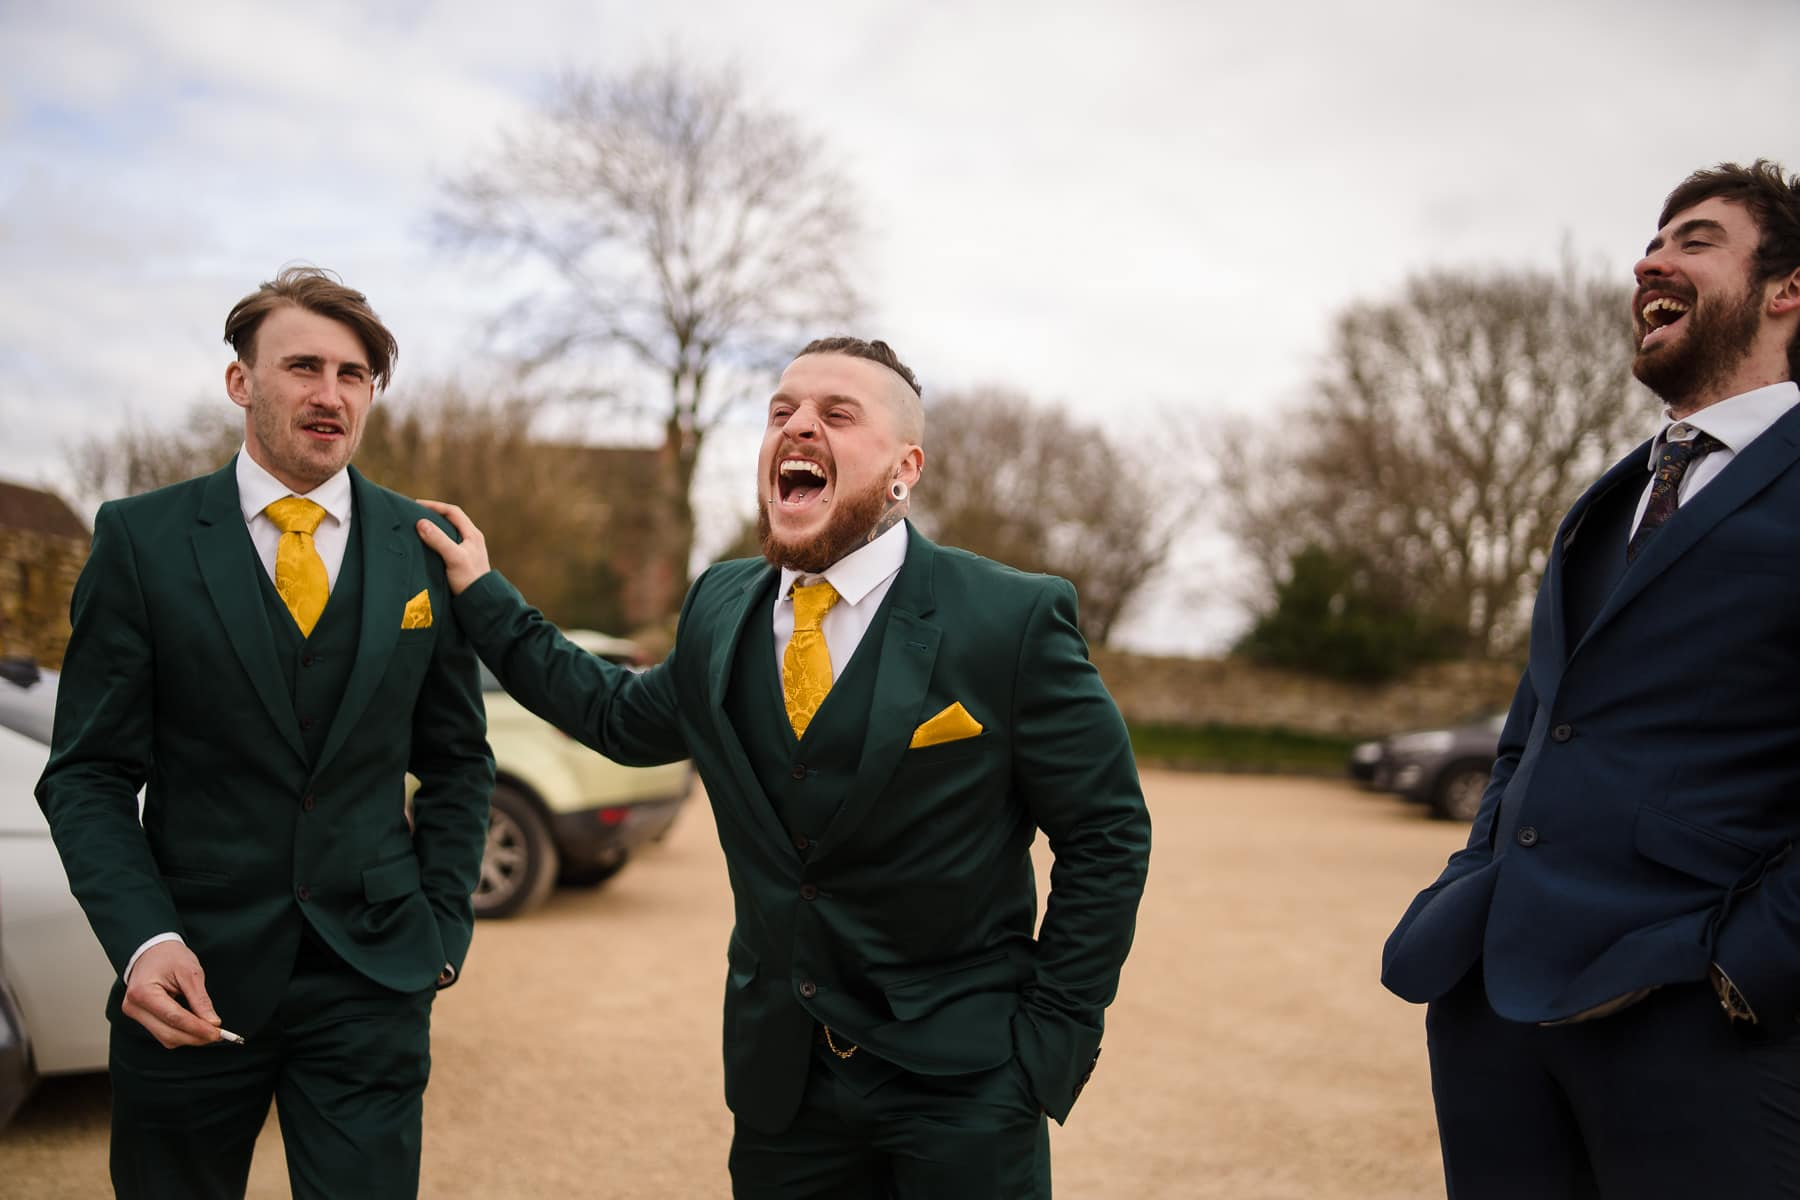 ALternative photography of a groom and his gooms men